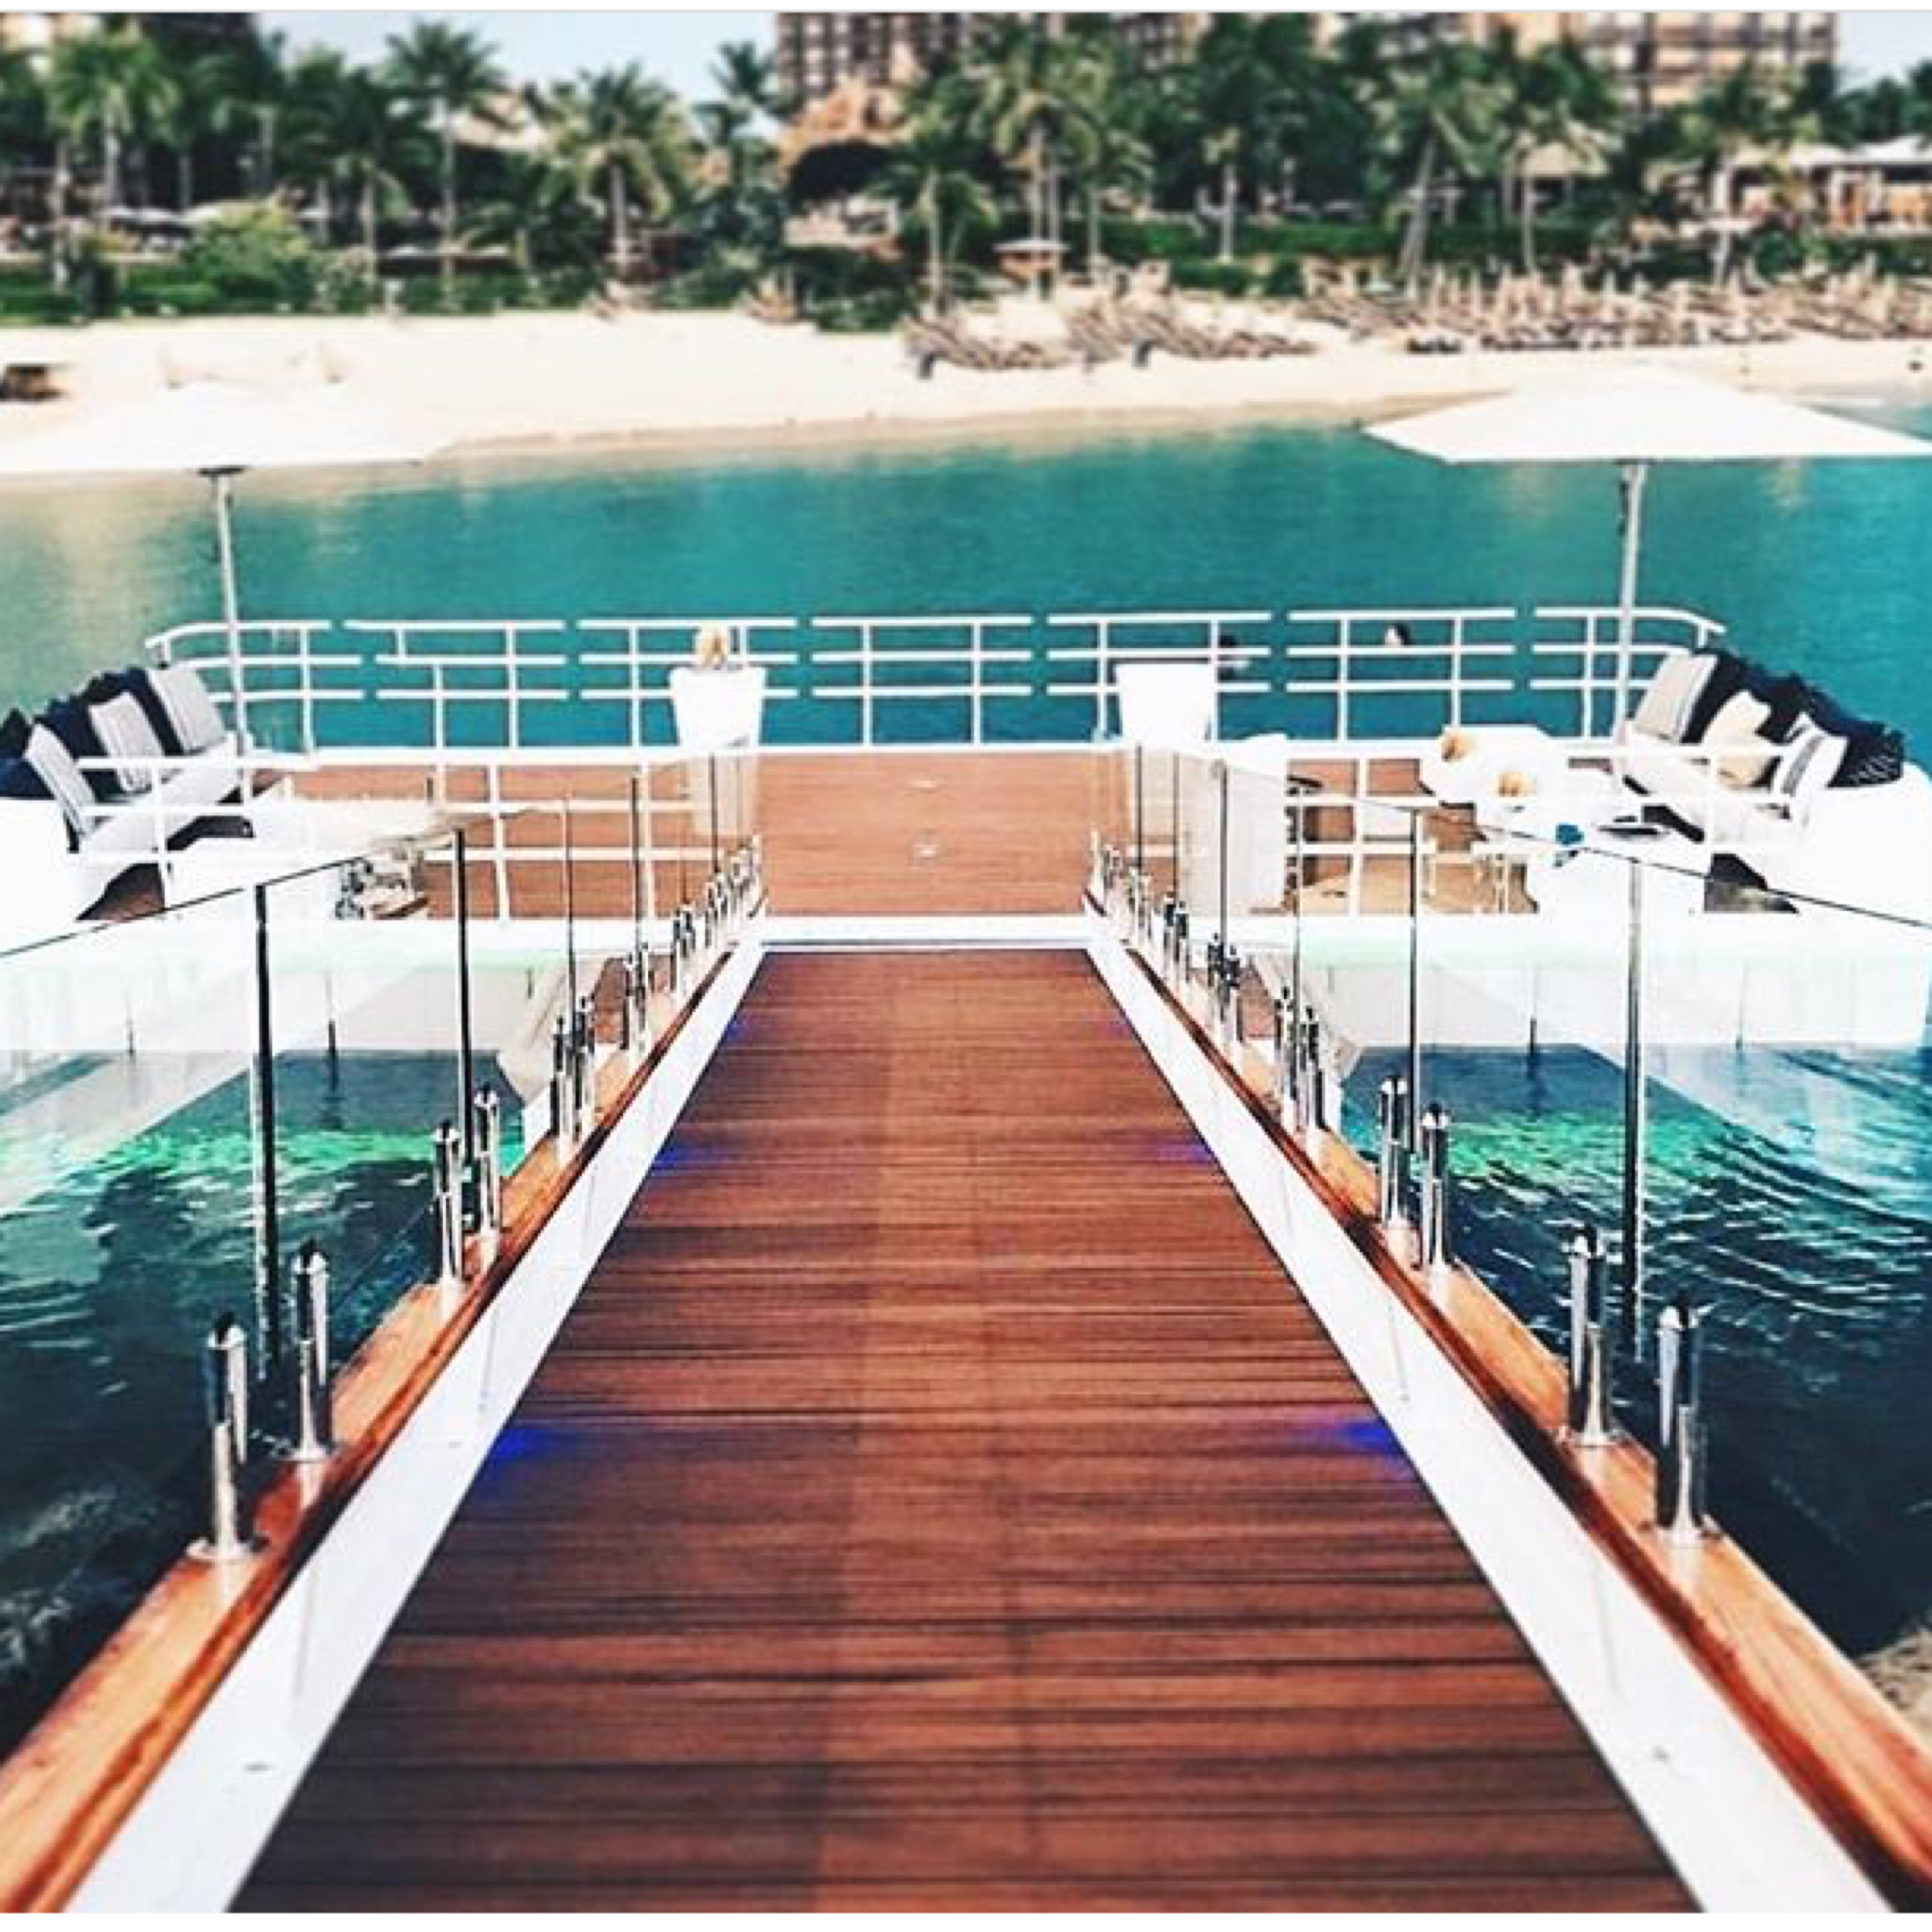 The floating platform is the perfect sunset ceremony location. Photo @fsoahu